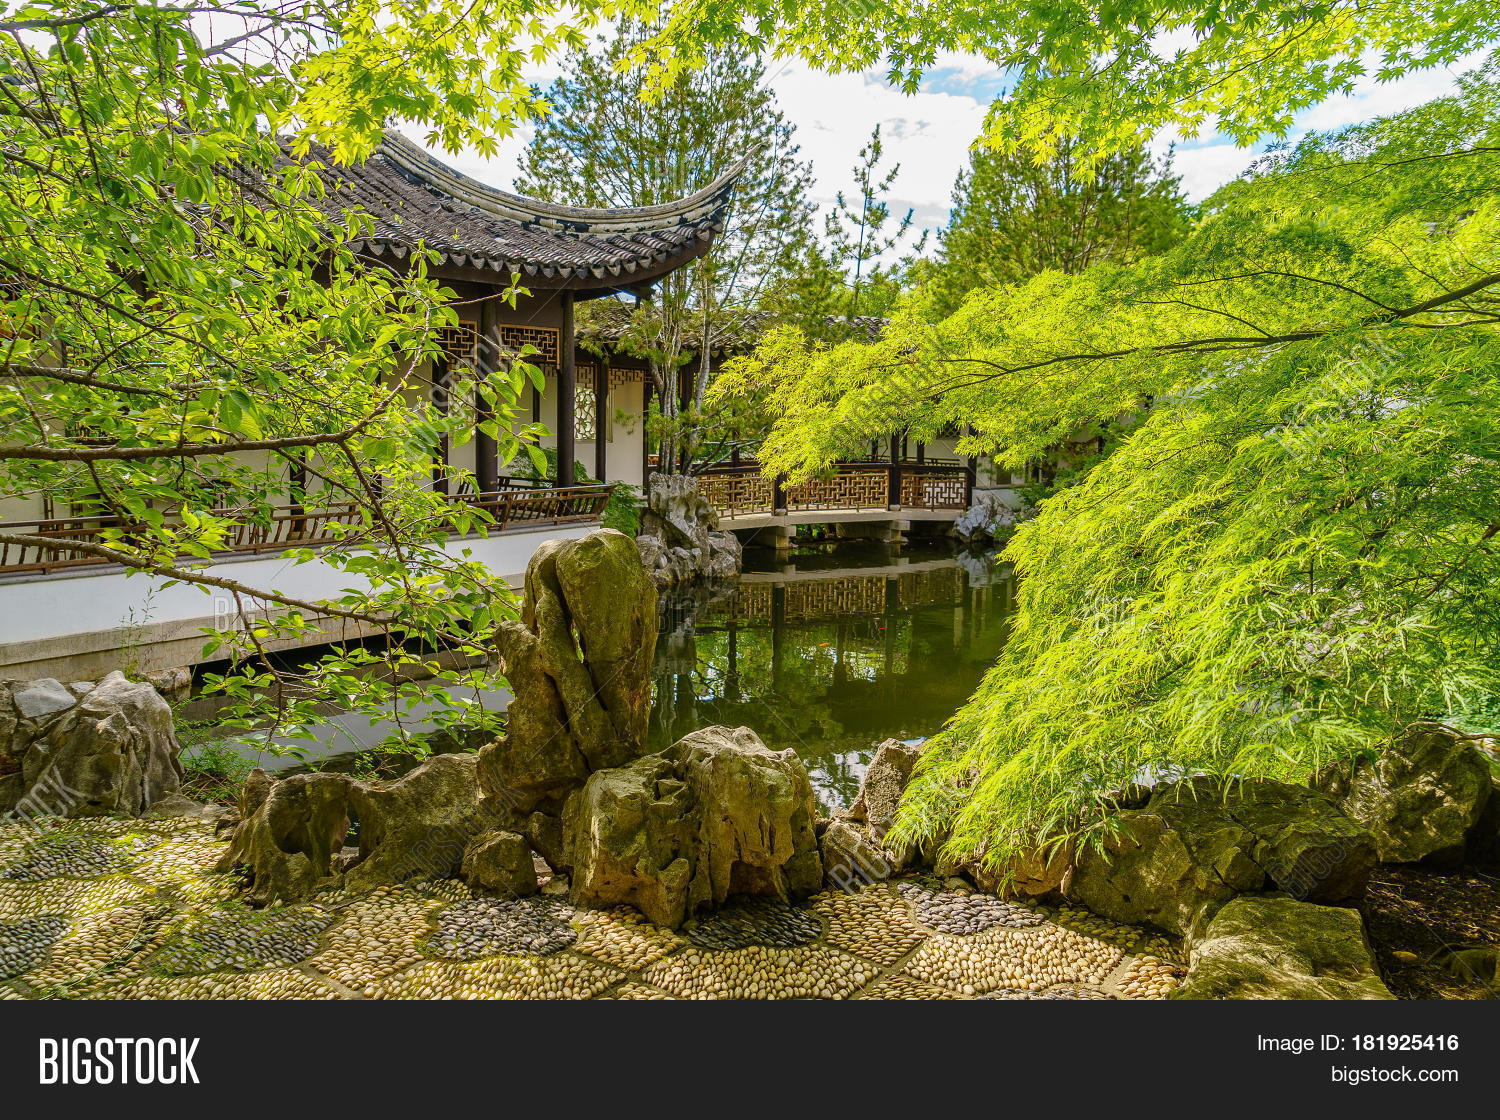 New york chinese scholar 39 s garden staten island ny stock photo stock images bigstock for New york chinese scholar s garden